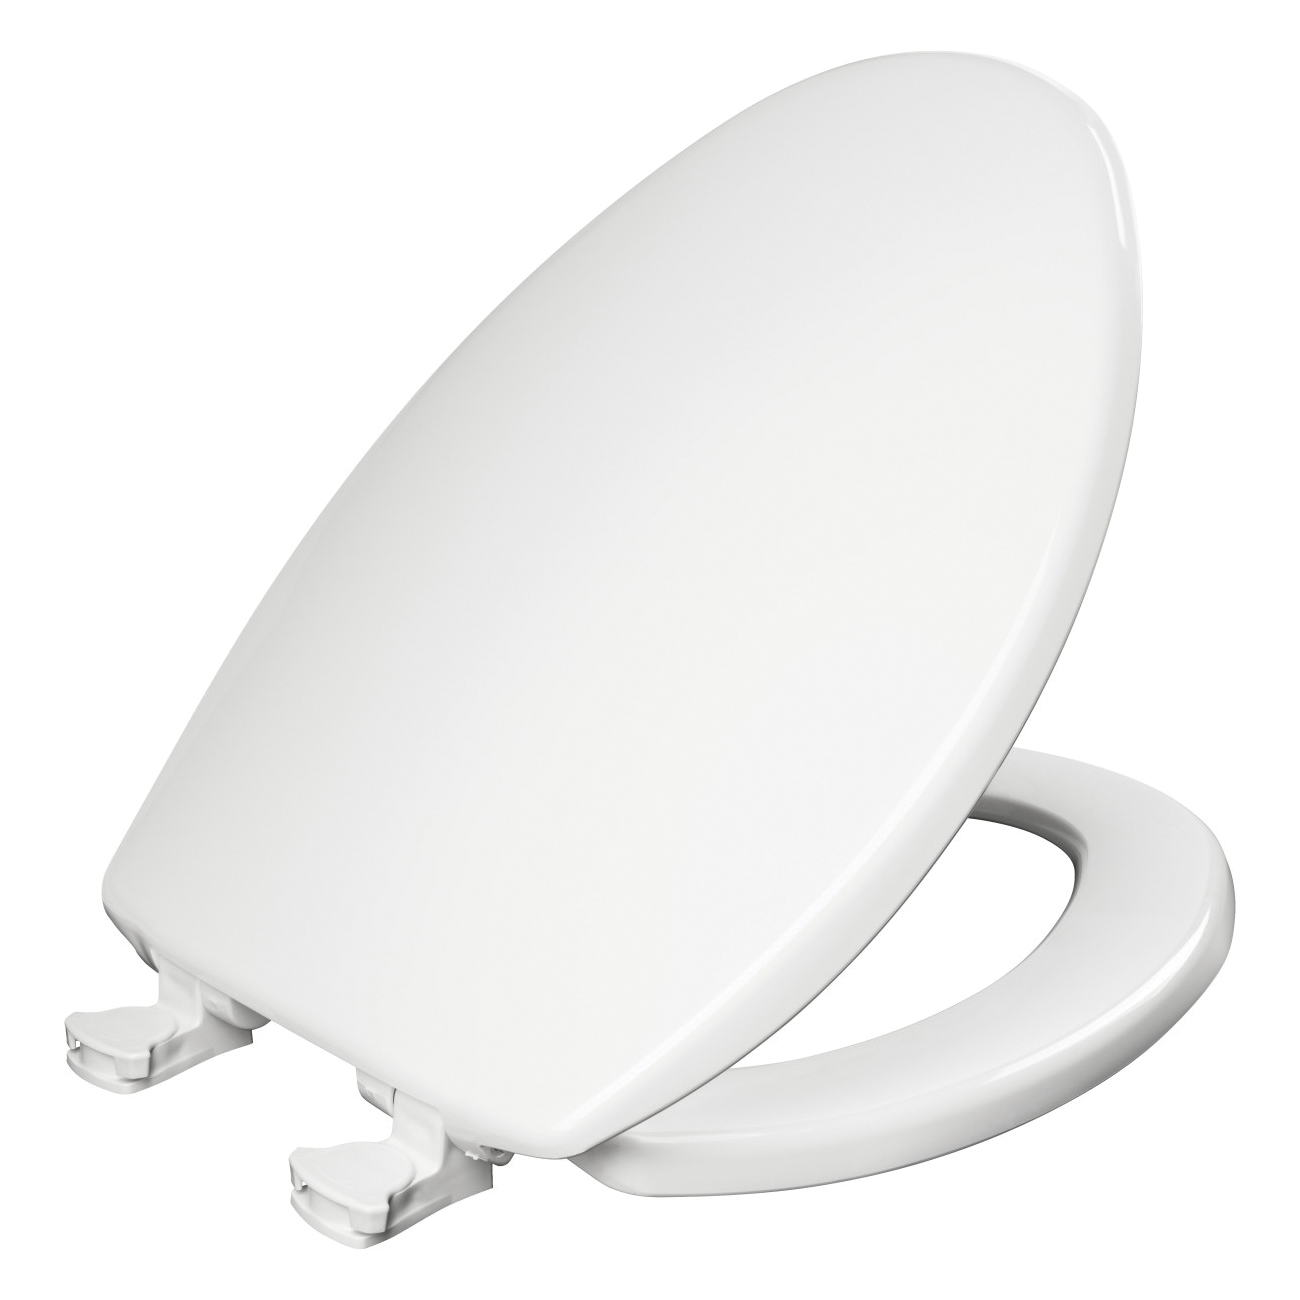 Bemis® 7300EC 000 Toilet Seat With Cover, Elongated Bowl, Closed Front, Plastic, White, Easy Clean™ Hinge, Domestic